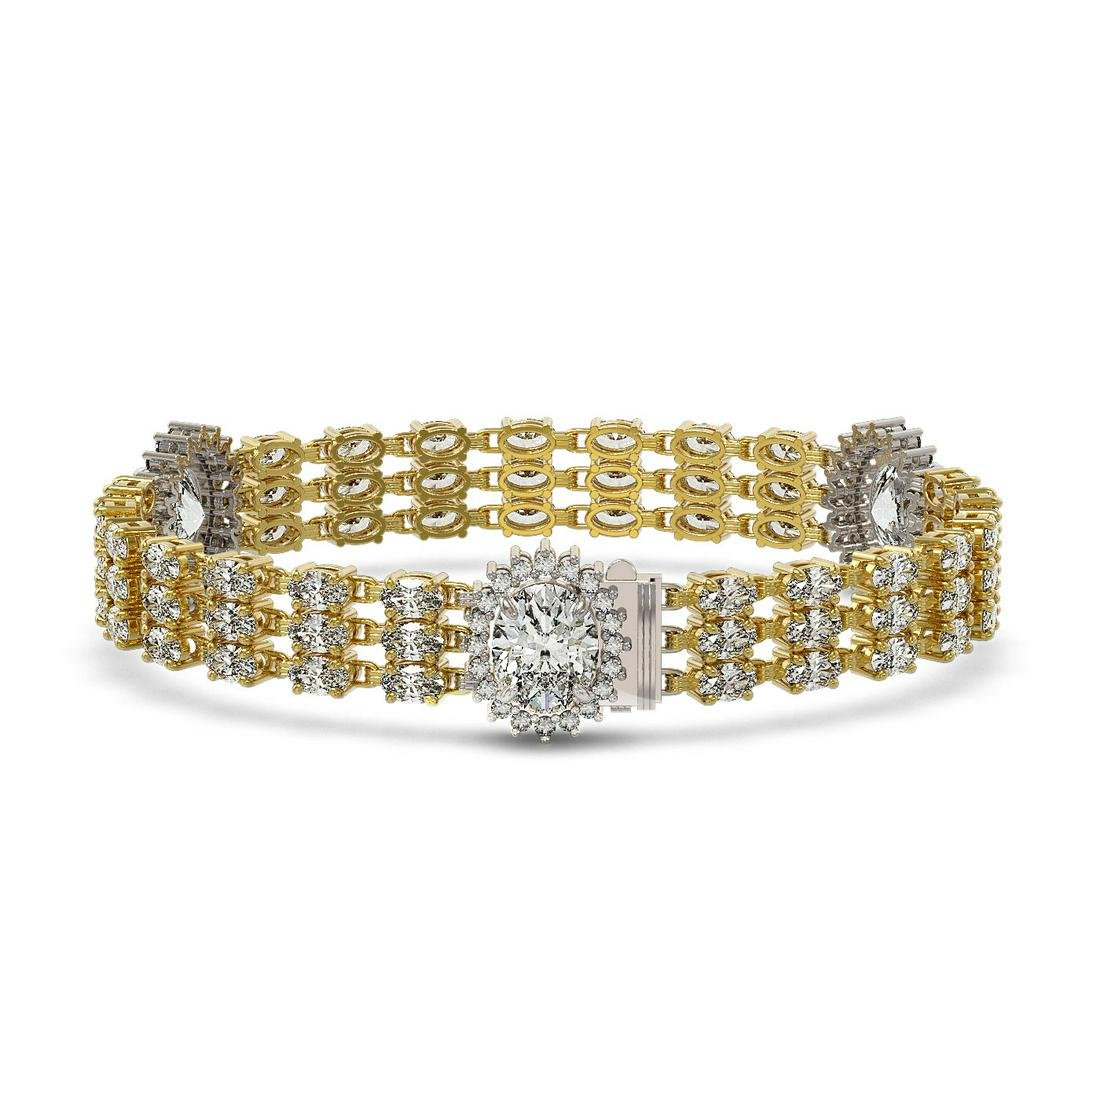 23.74 ctw Oval Diamond Bracelet 18K Yellow Gold -